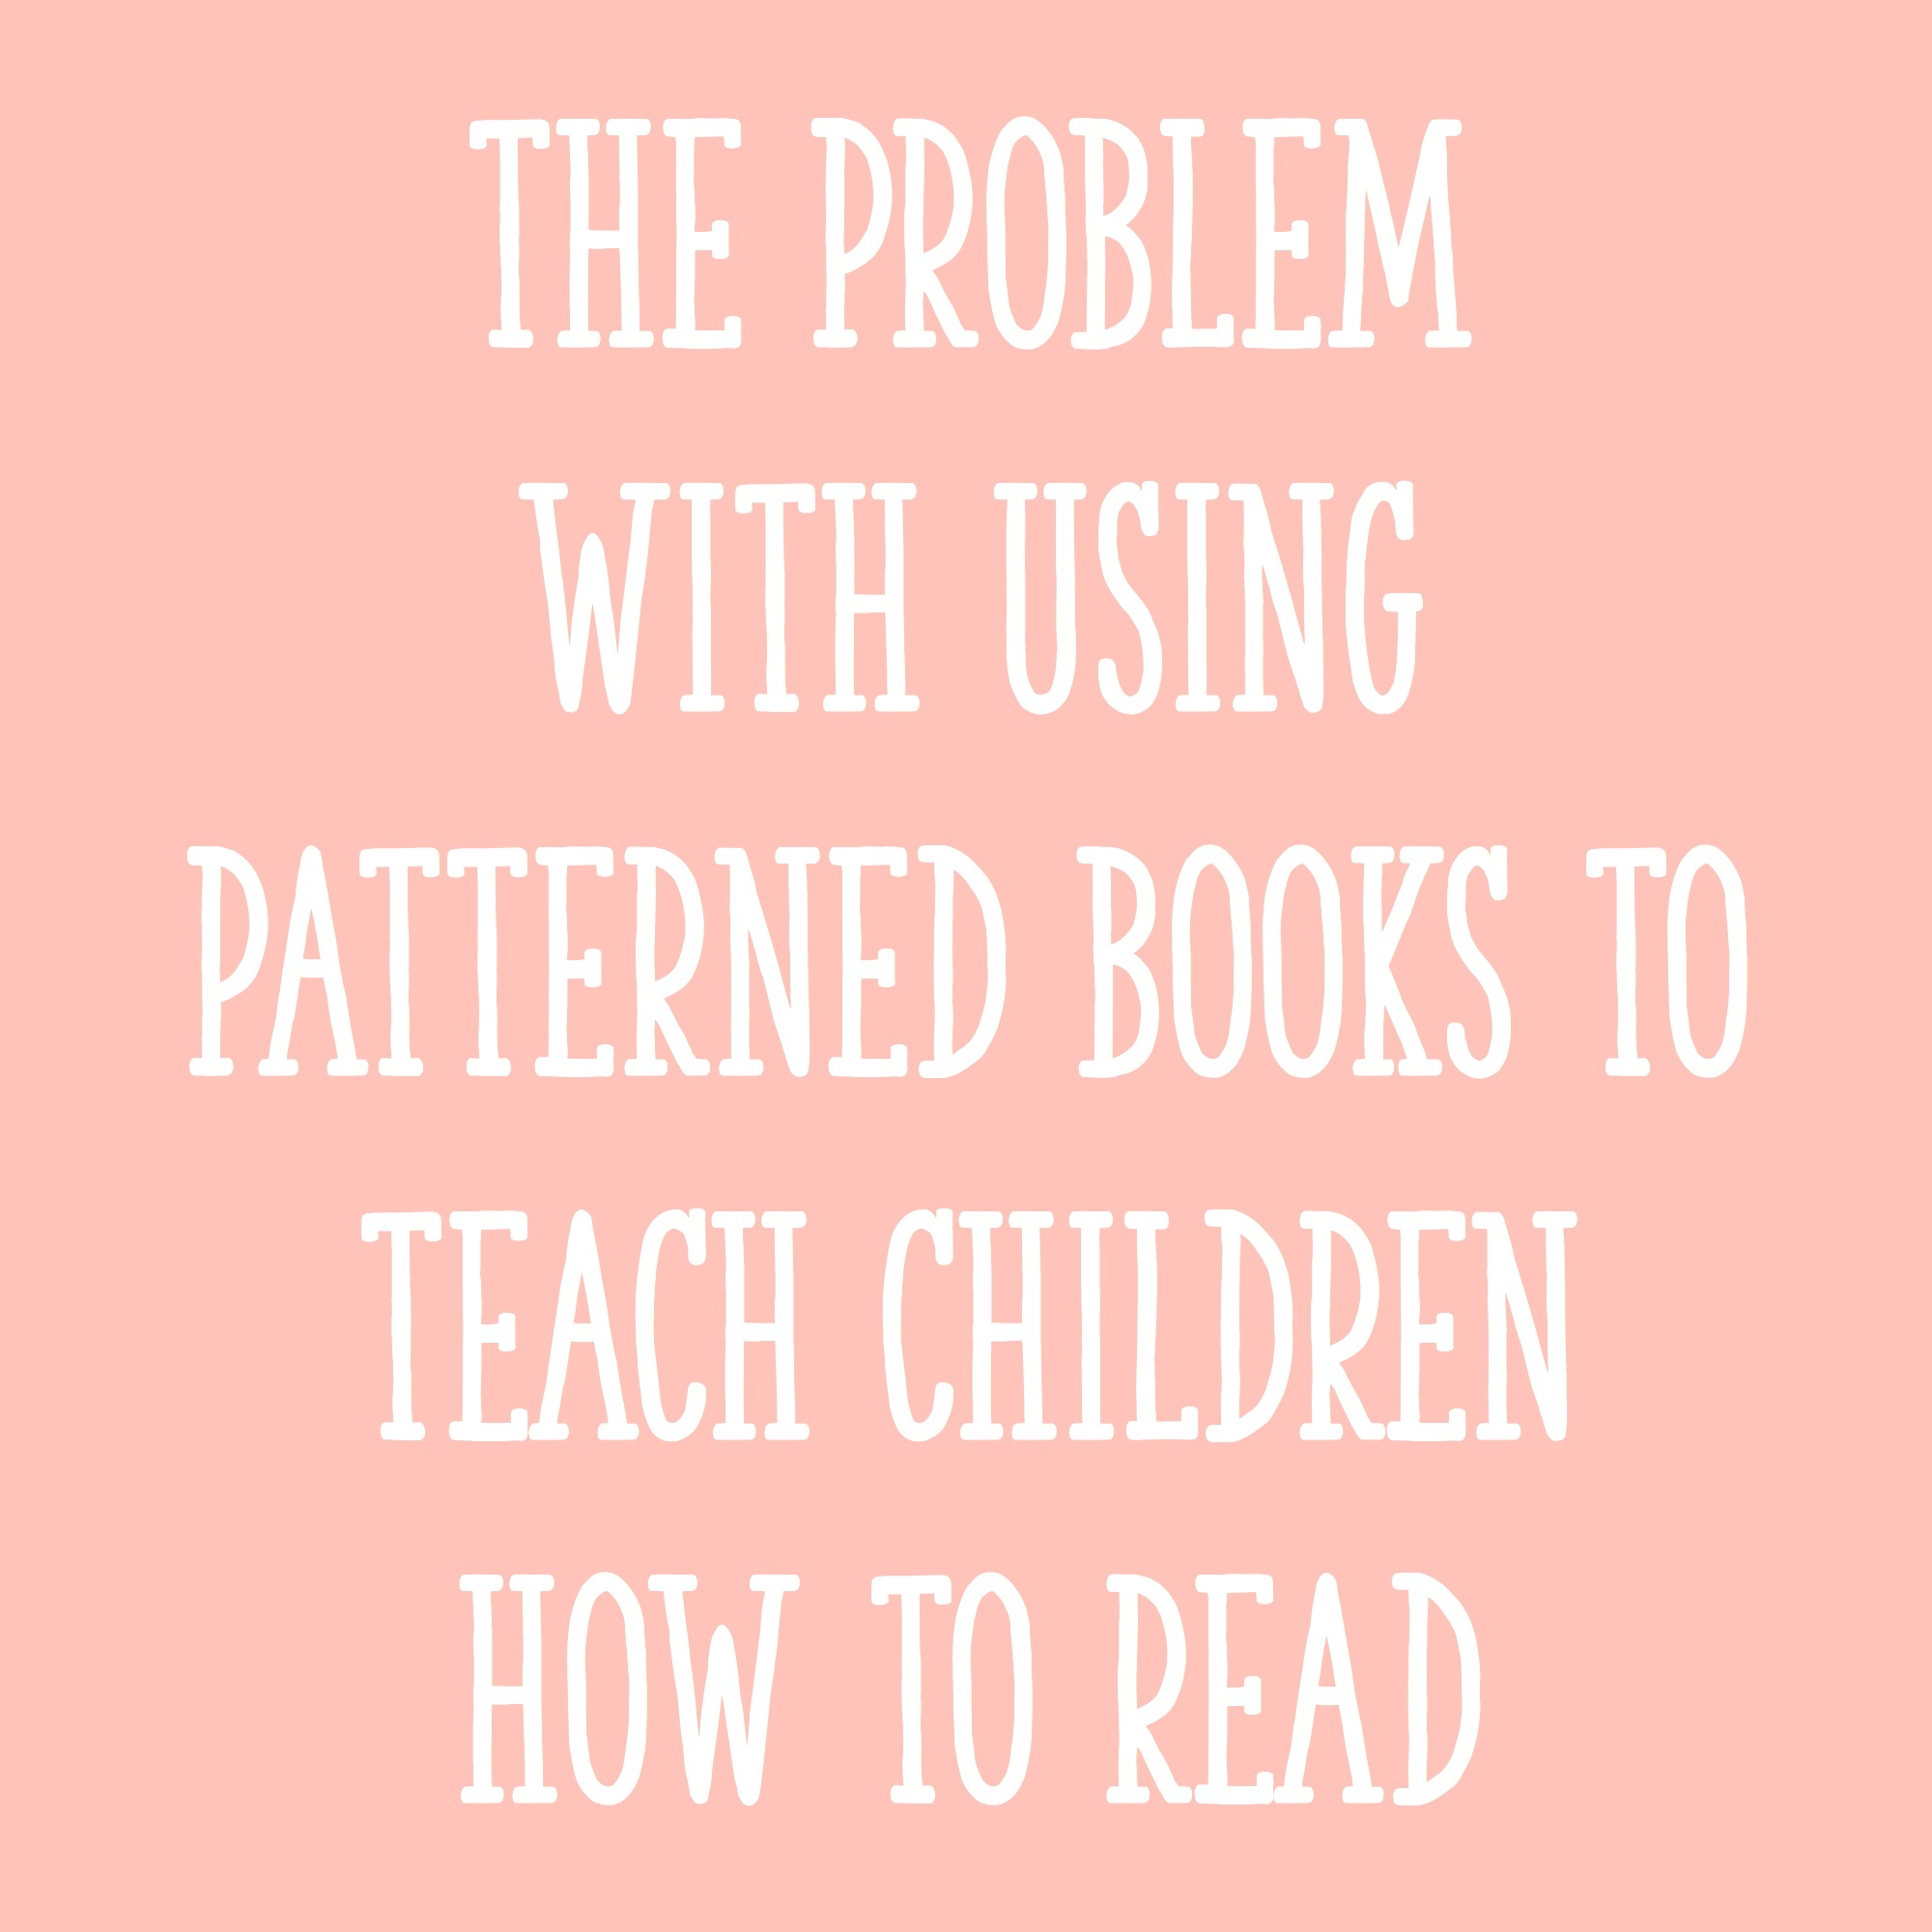 children with reading problem A child who can see the 20/20 line on a visual acuity chart can still have vision problems, and the visual skills needed for reading and learning are much more complex than identifying letters on a wall chart.